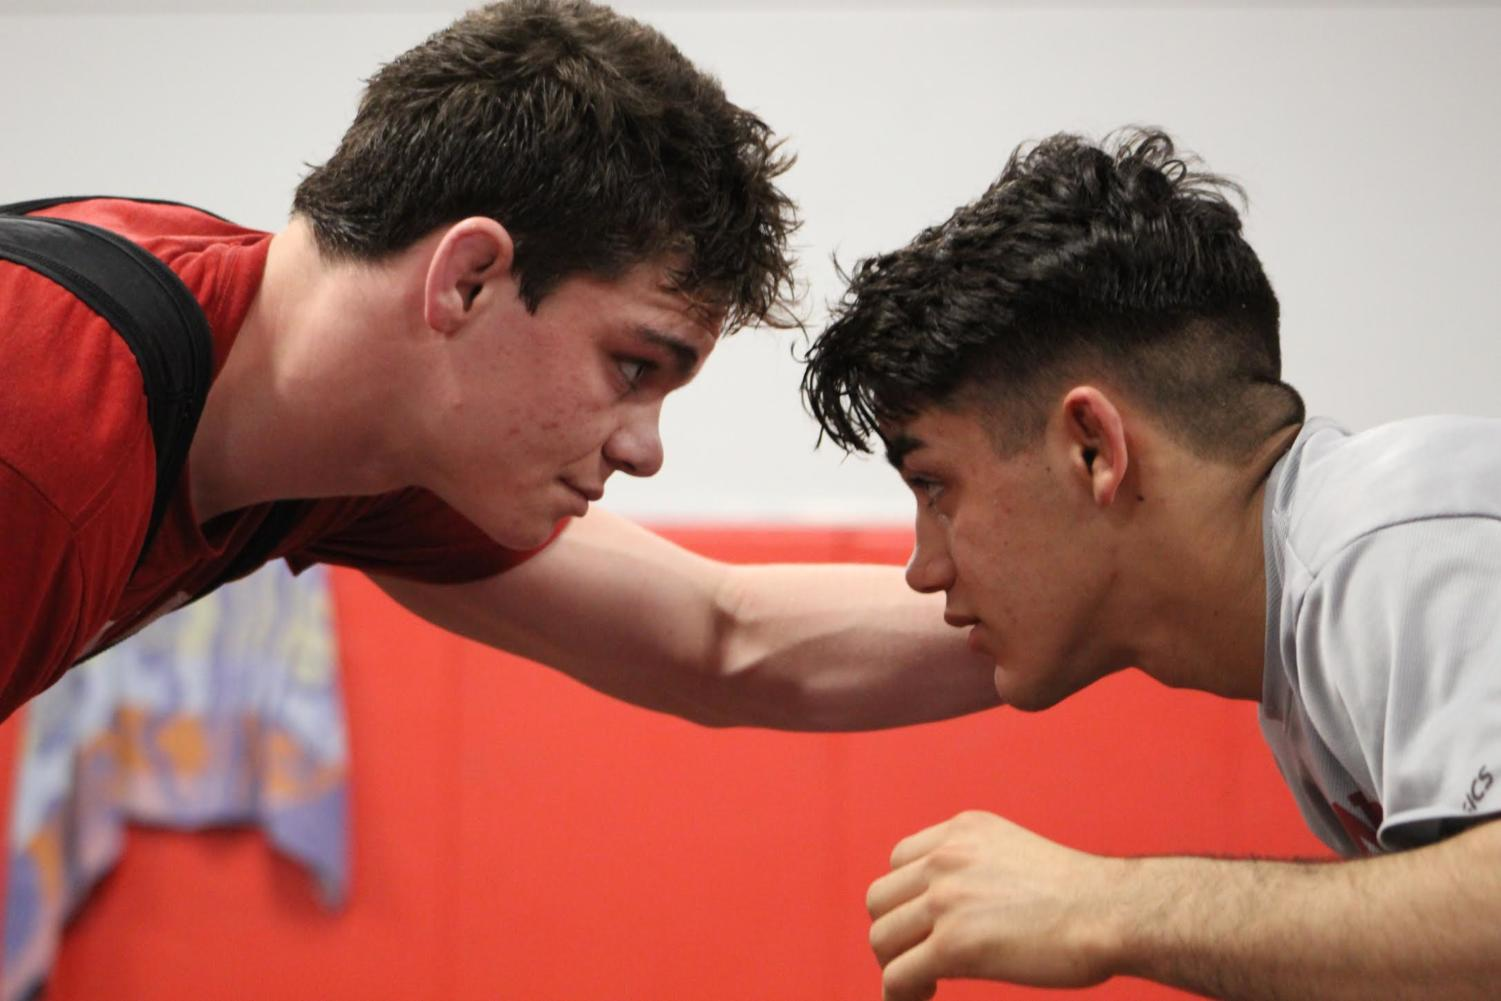 Juniors Joey Mora (left) and Aaron Nagao (right) prep for a practice match on campus.